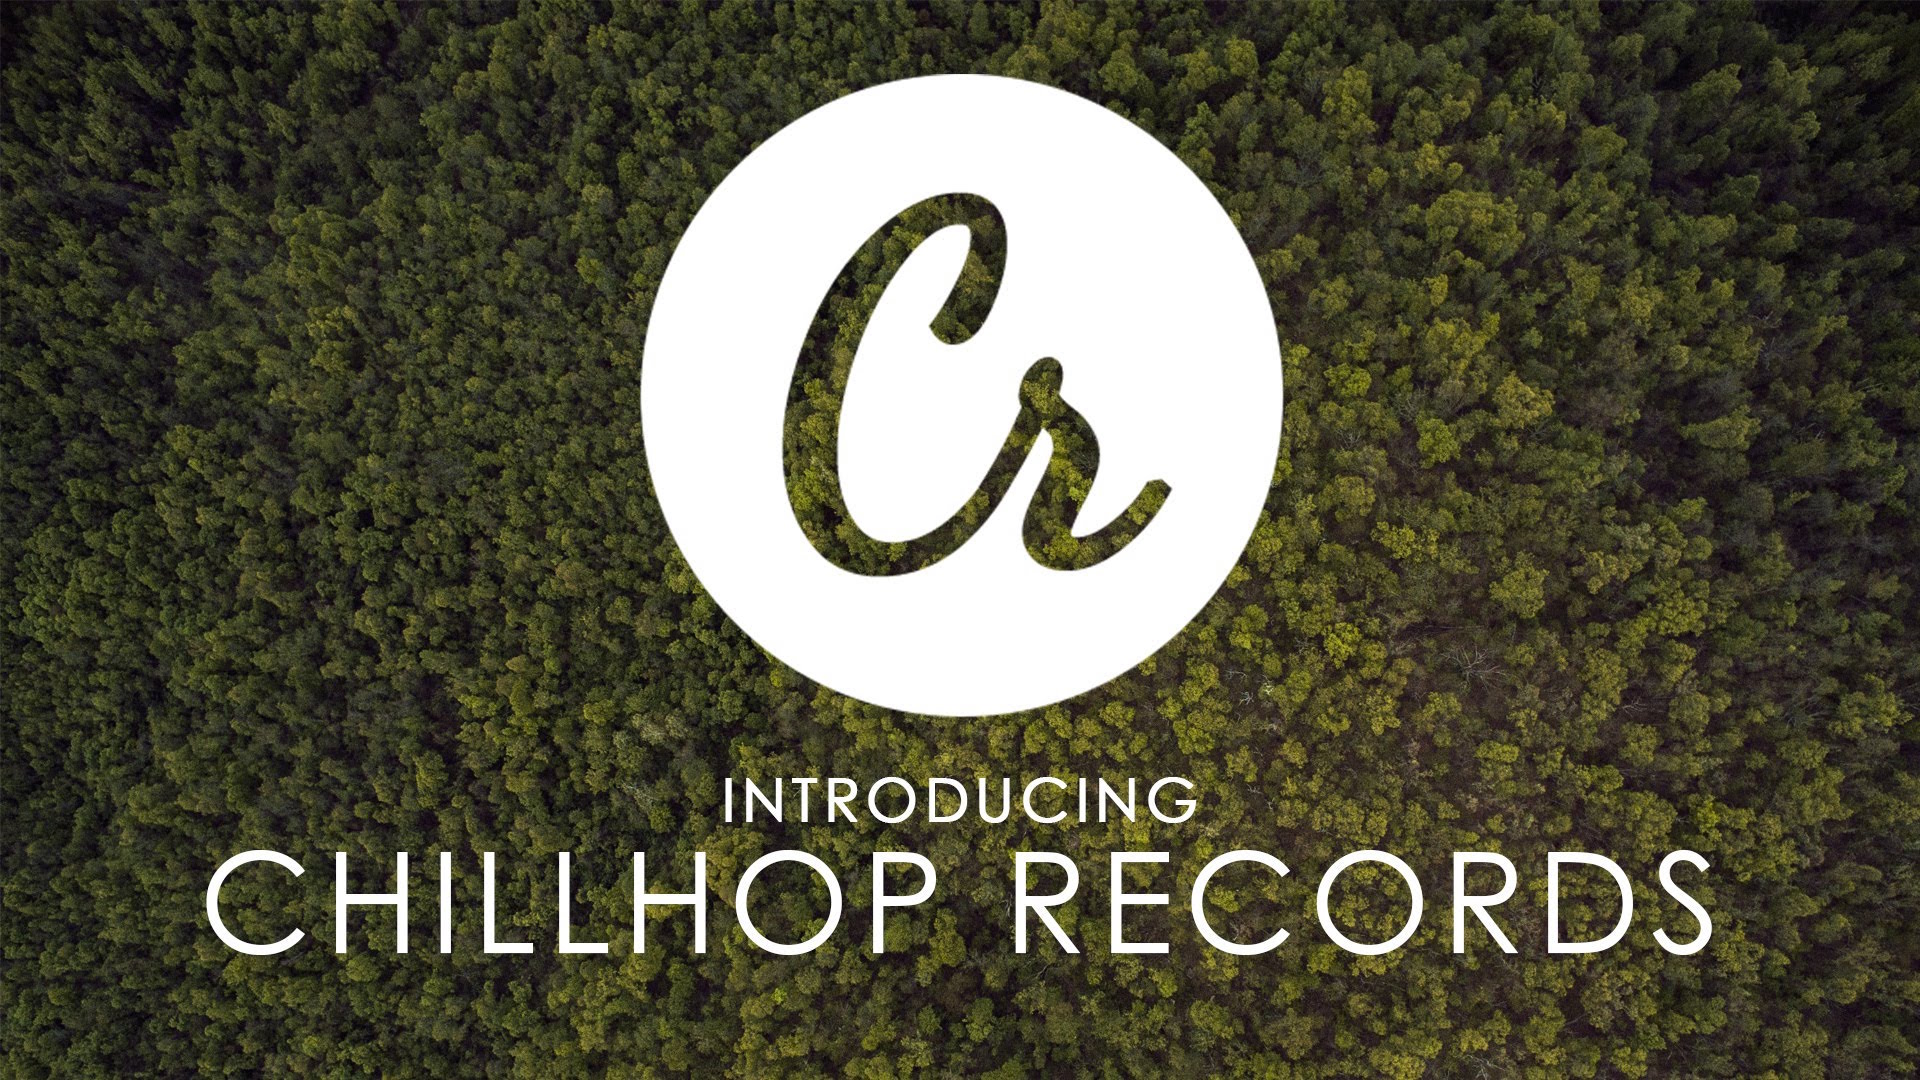 Chillhop Records track 'Footsteps' to be used in upcoming video image